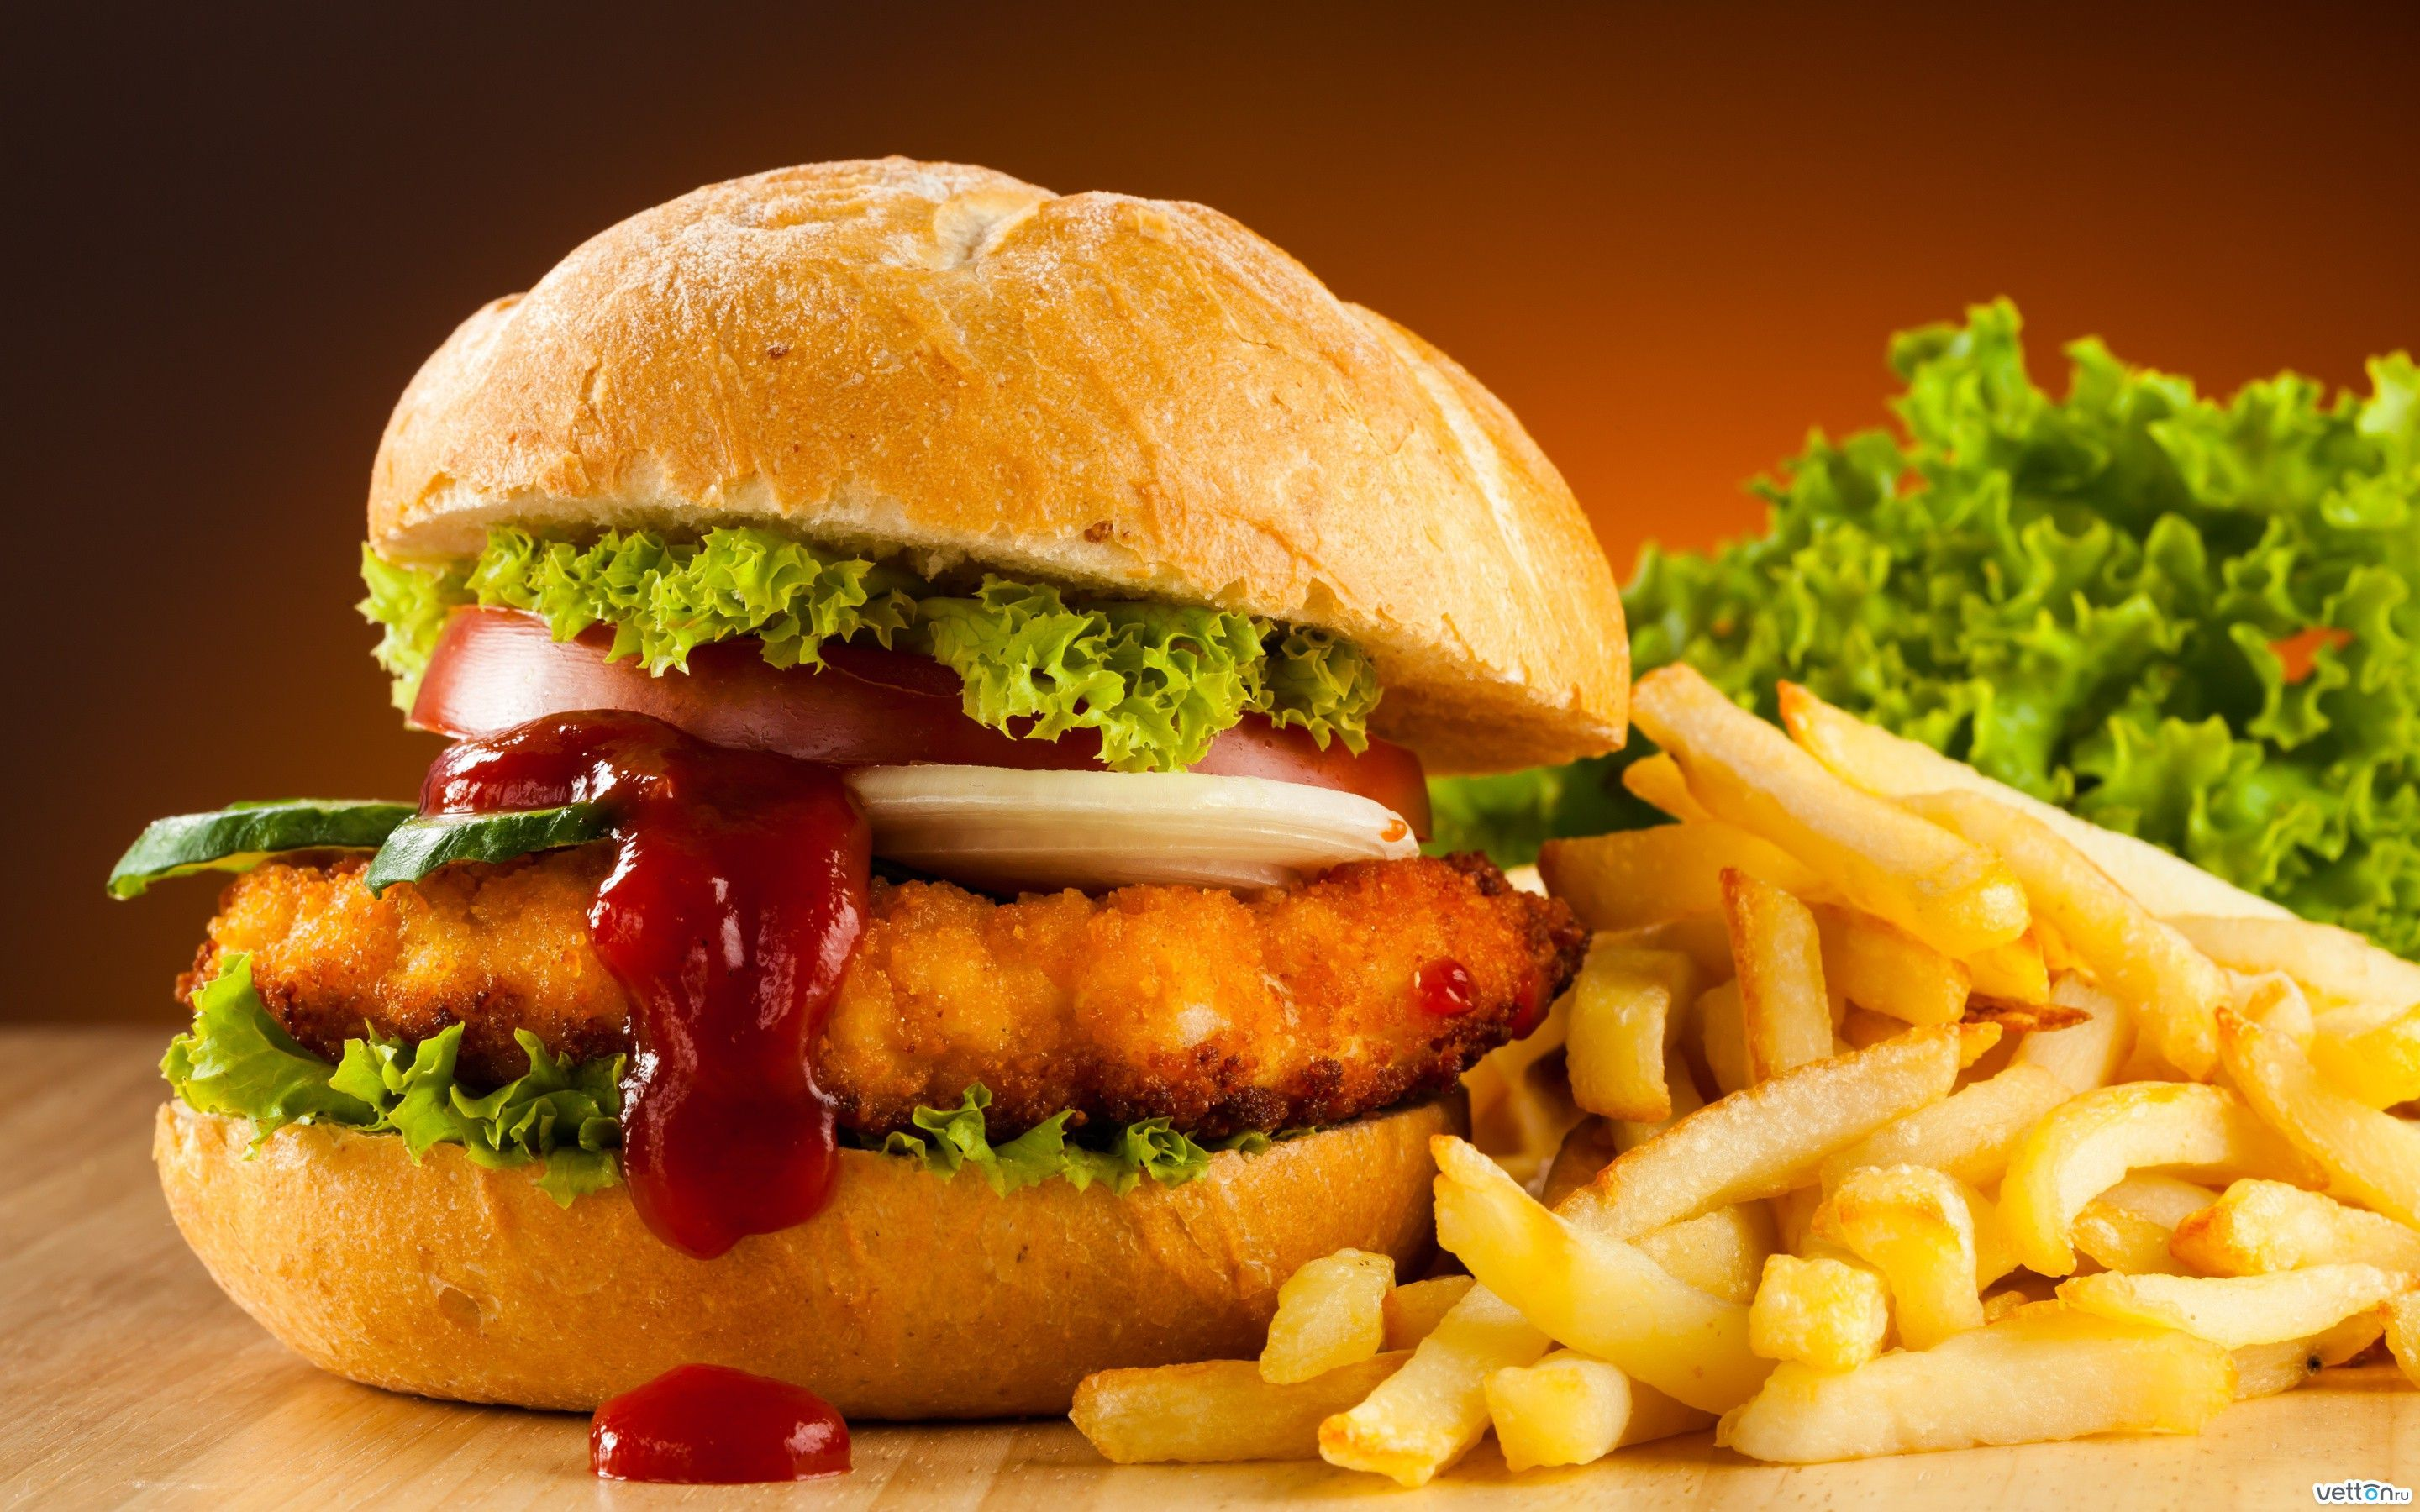 chicken burger with french fries